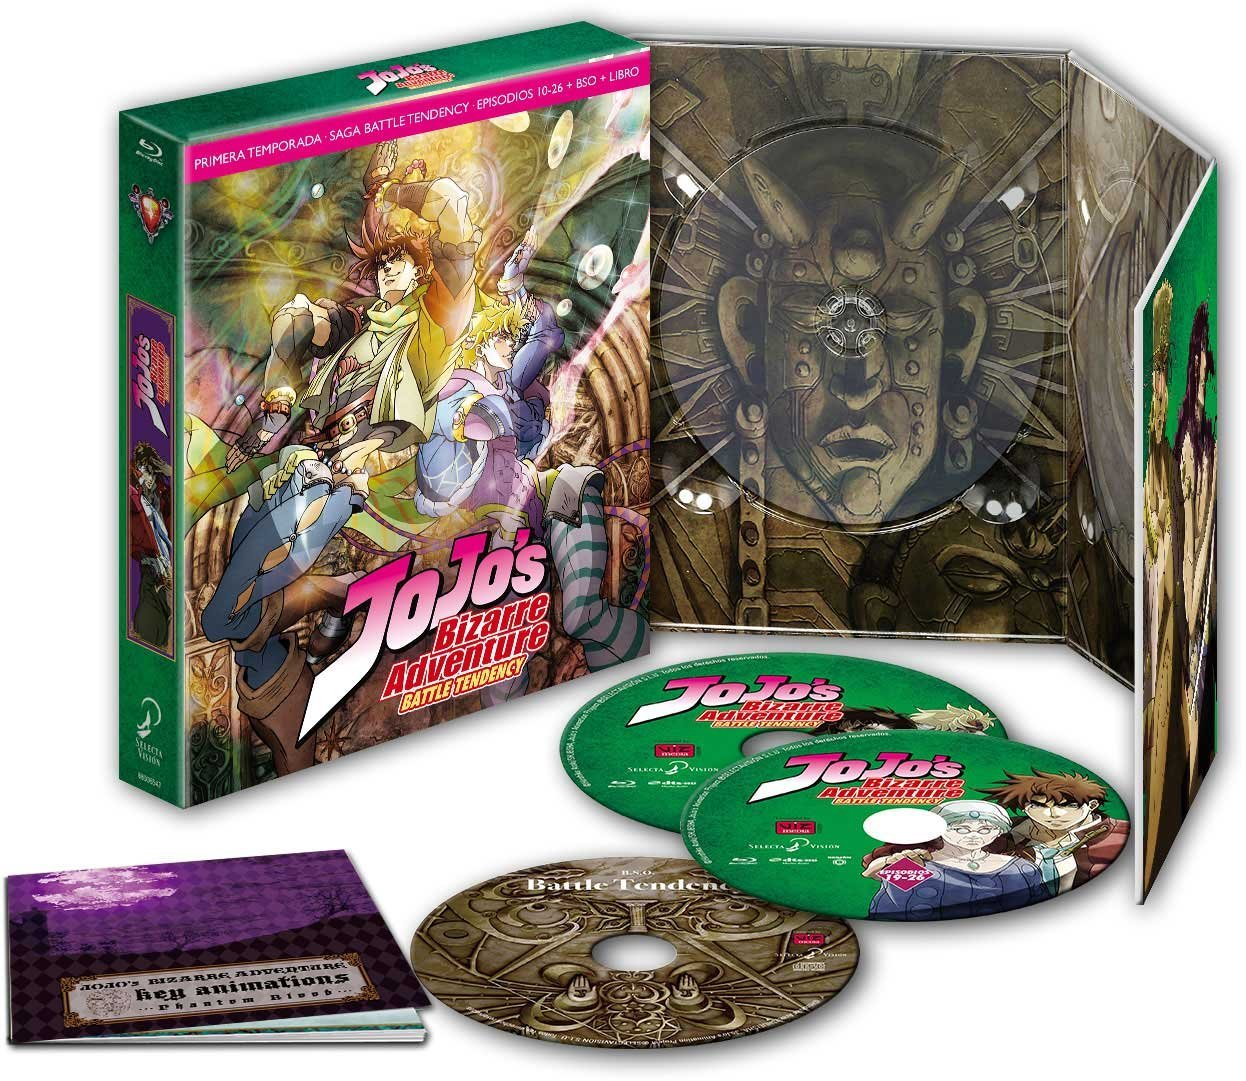 Jojo´s Bizarre Adventure, Temporada 1 - Parte 2: Battle Tendency (First Print Edition)